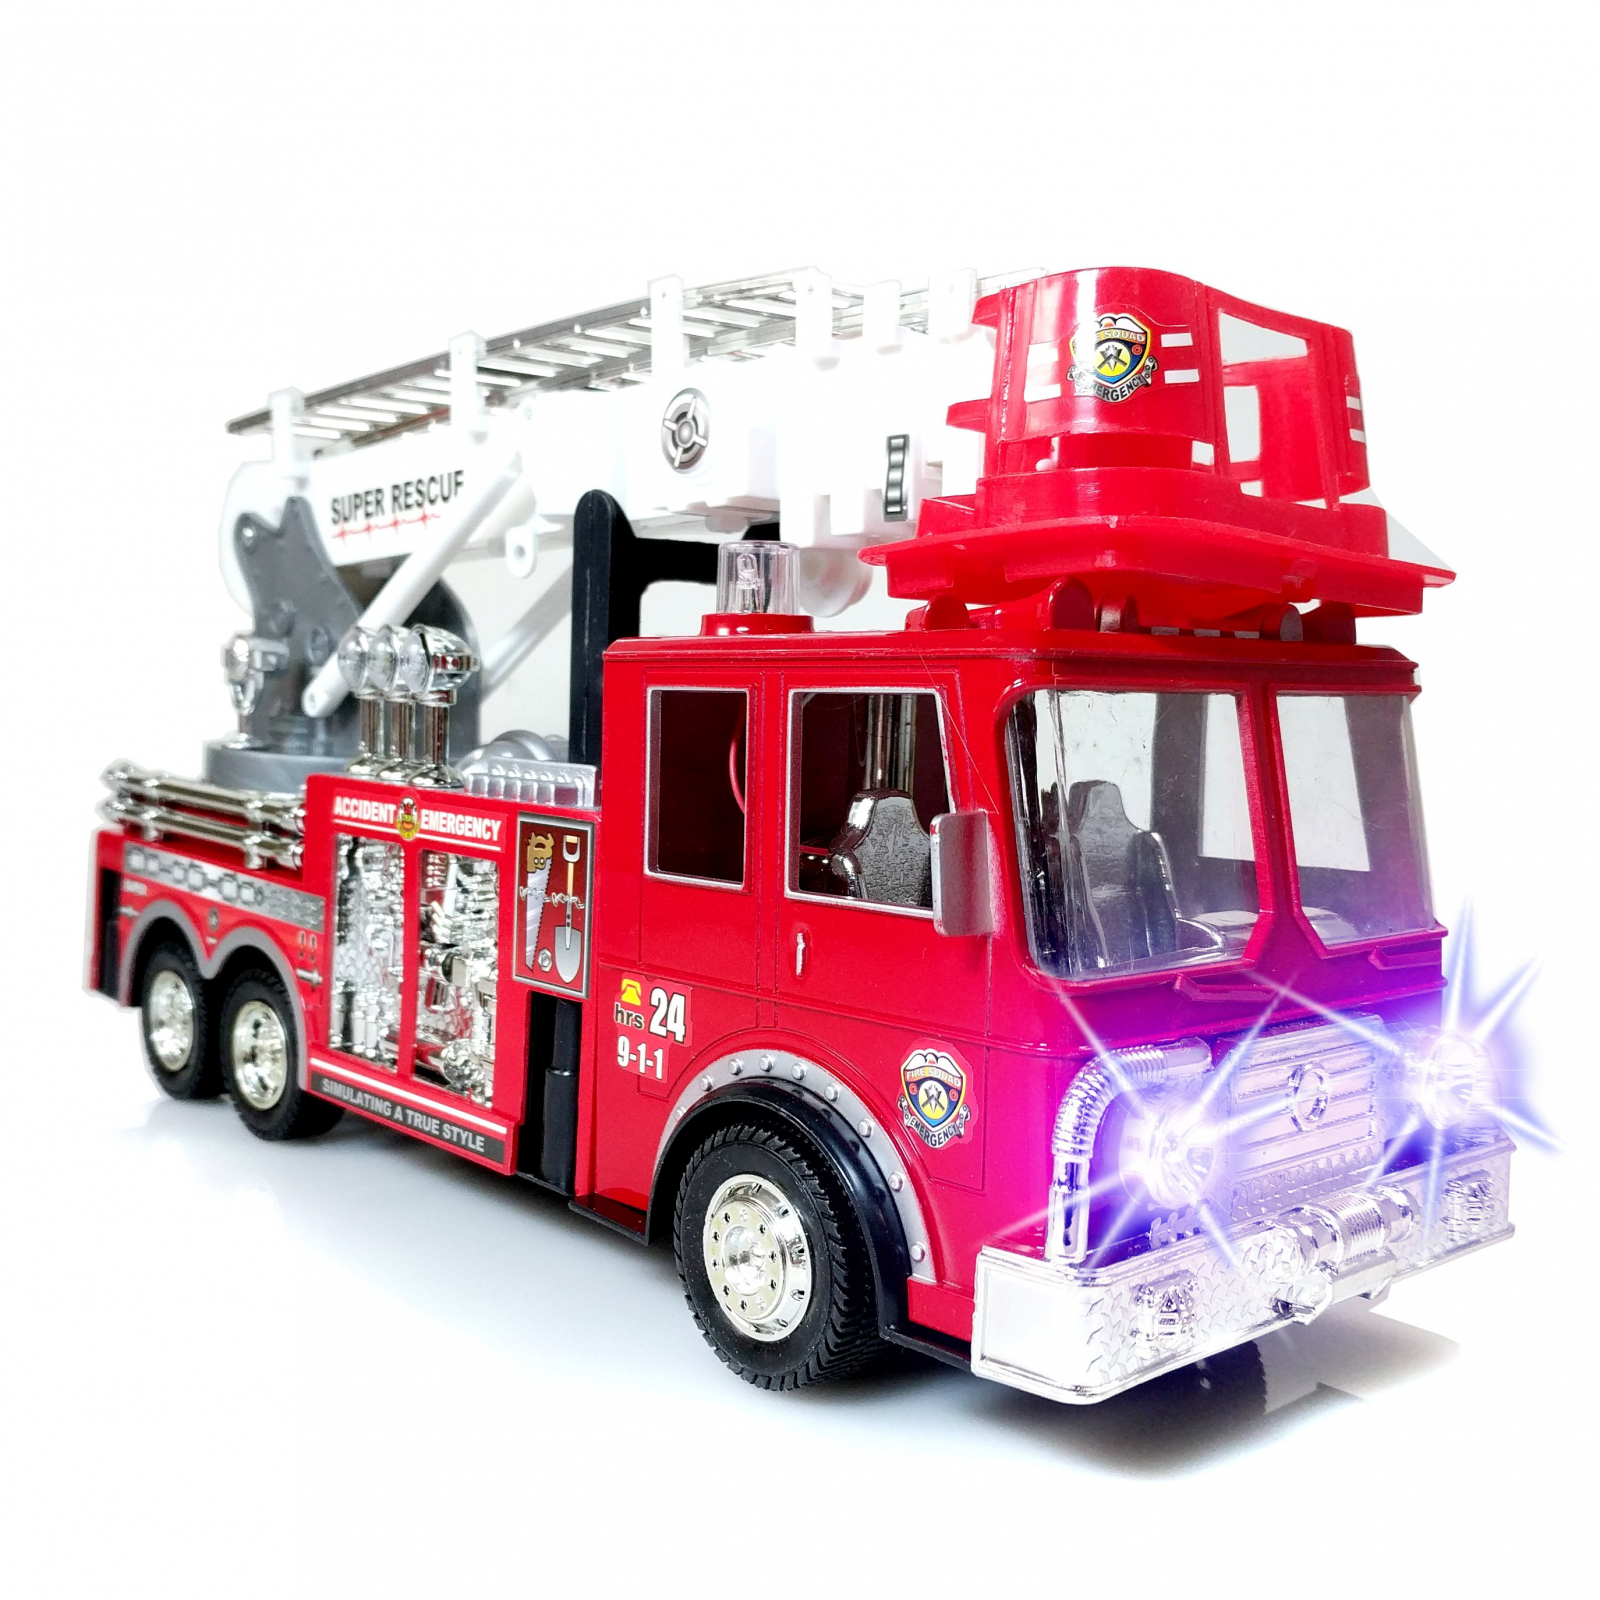 TychoTyke Fire Truck Toy with Extendable Ladder, Light-Up